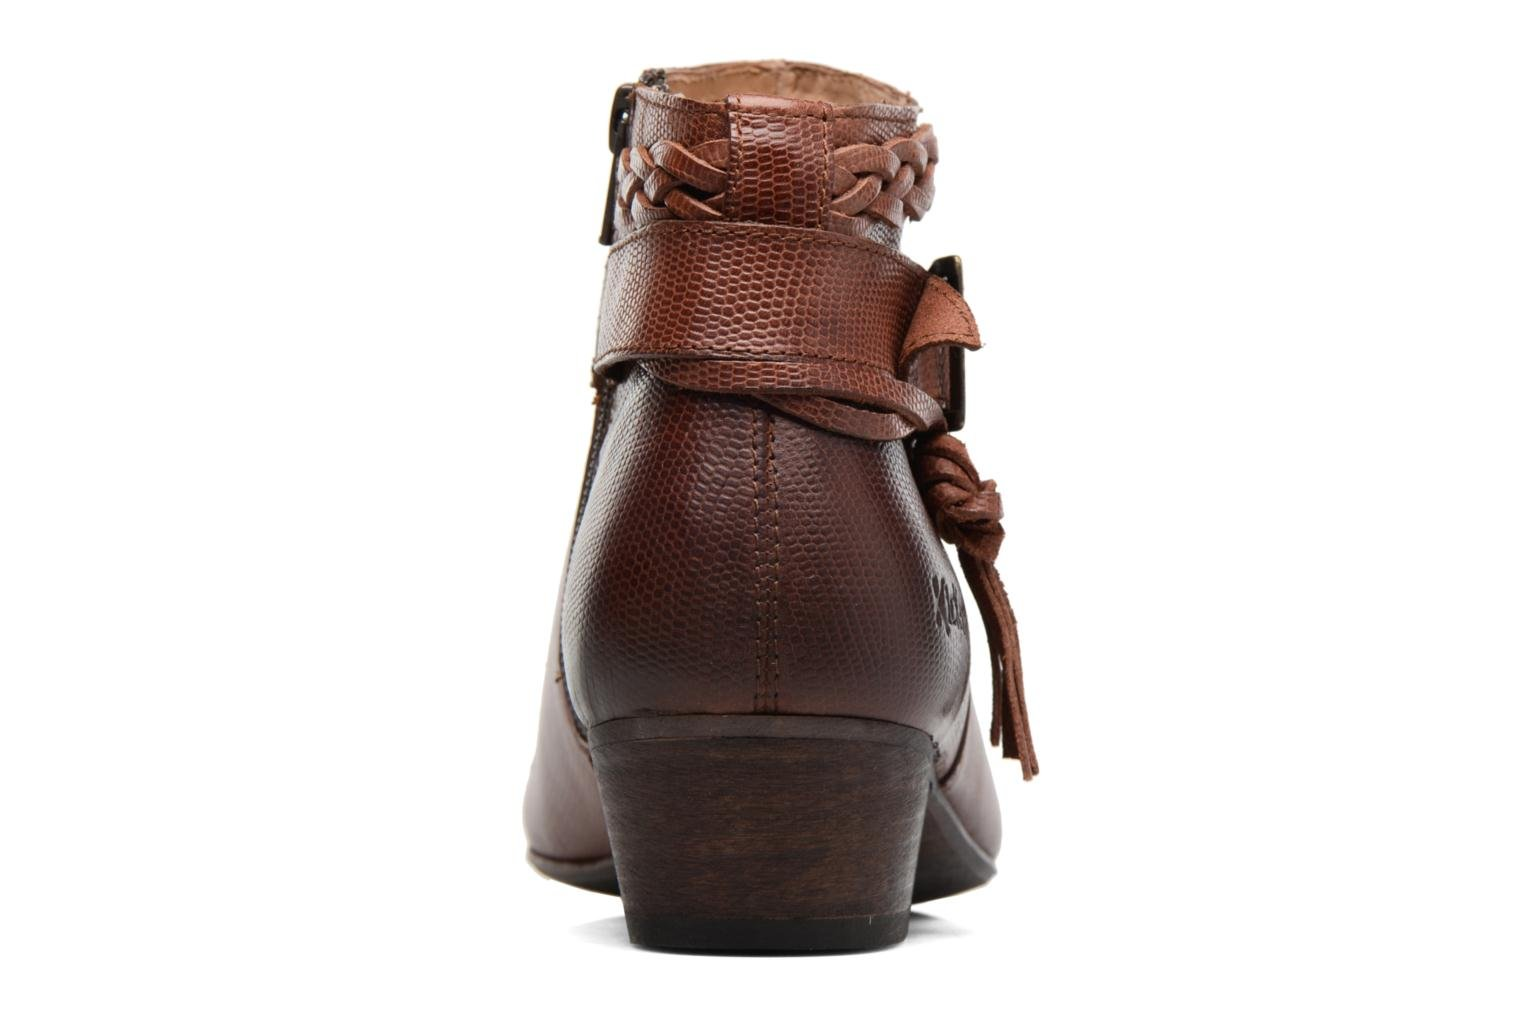 Westboots marron